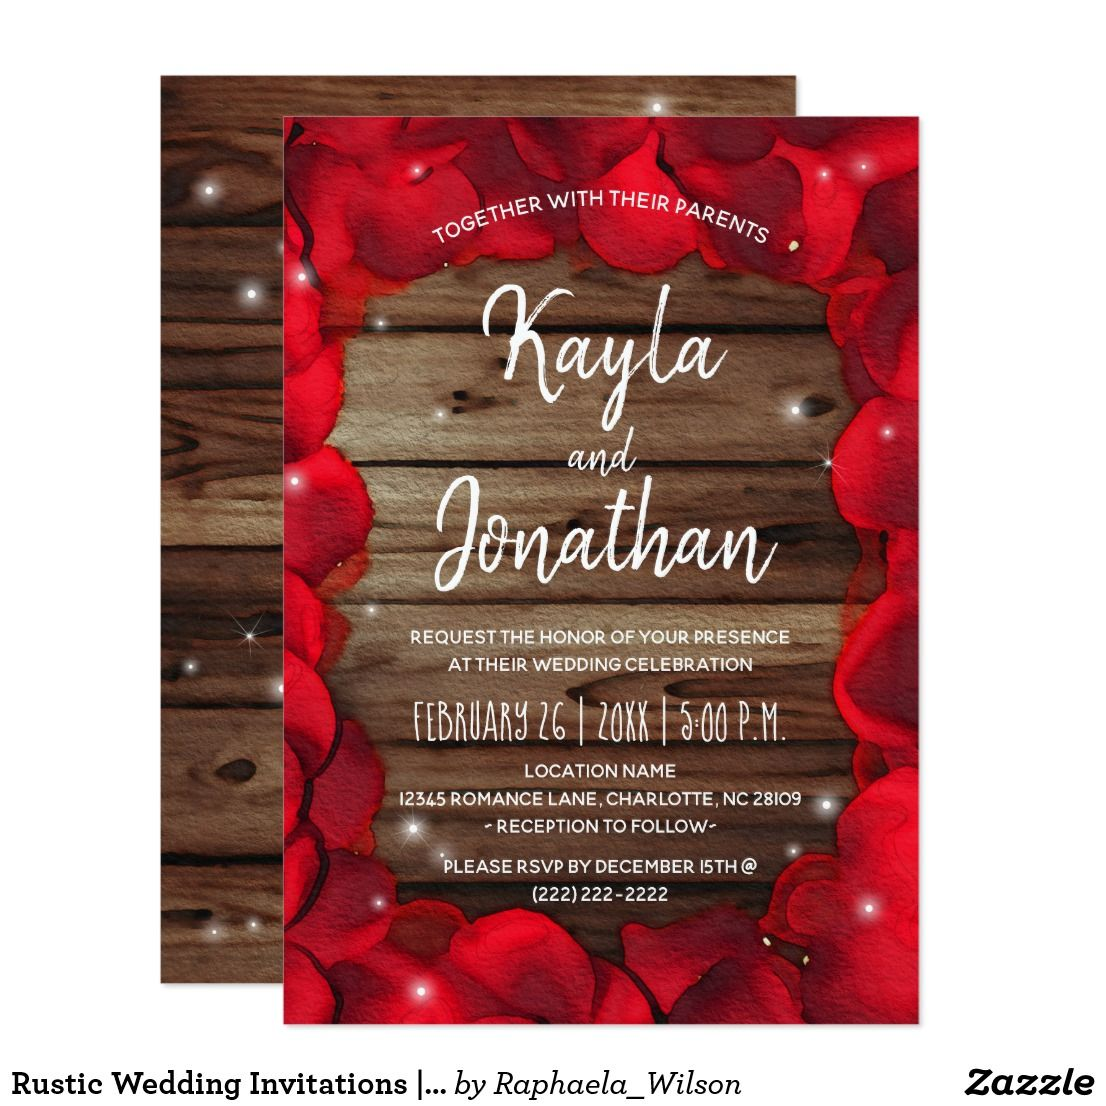 Rustic Wedding Invitations | Wood Red Rose Petals | Pinterest | Red ...